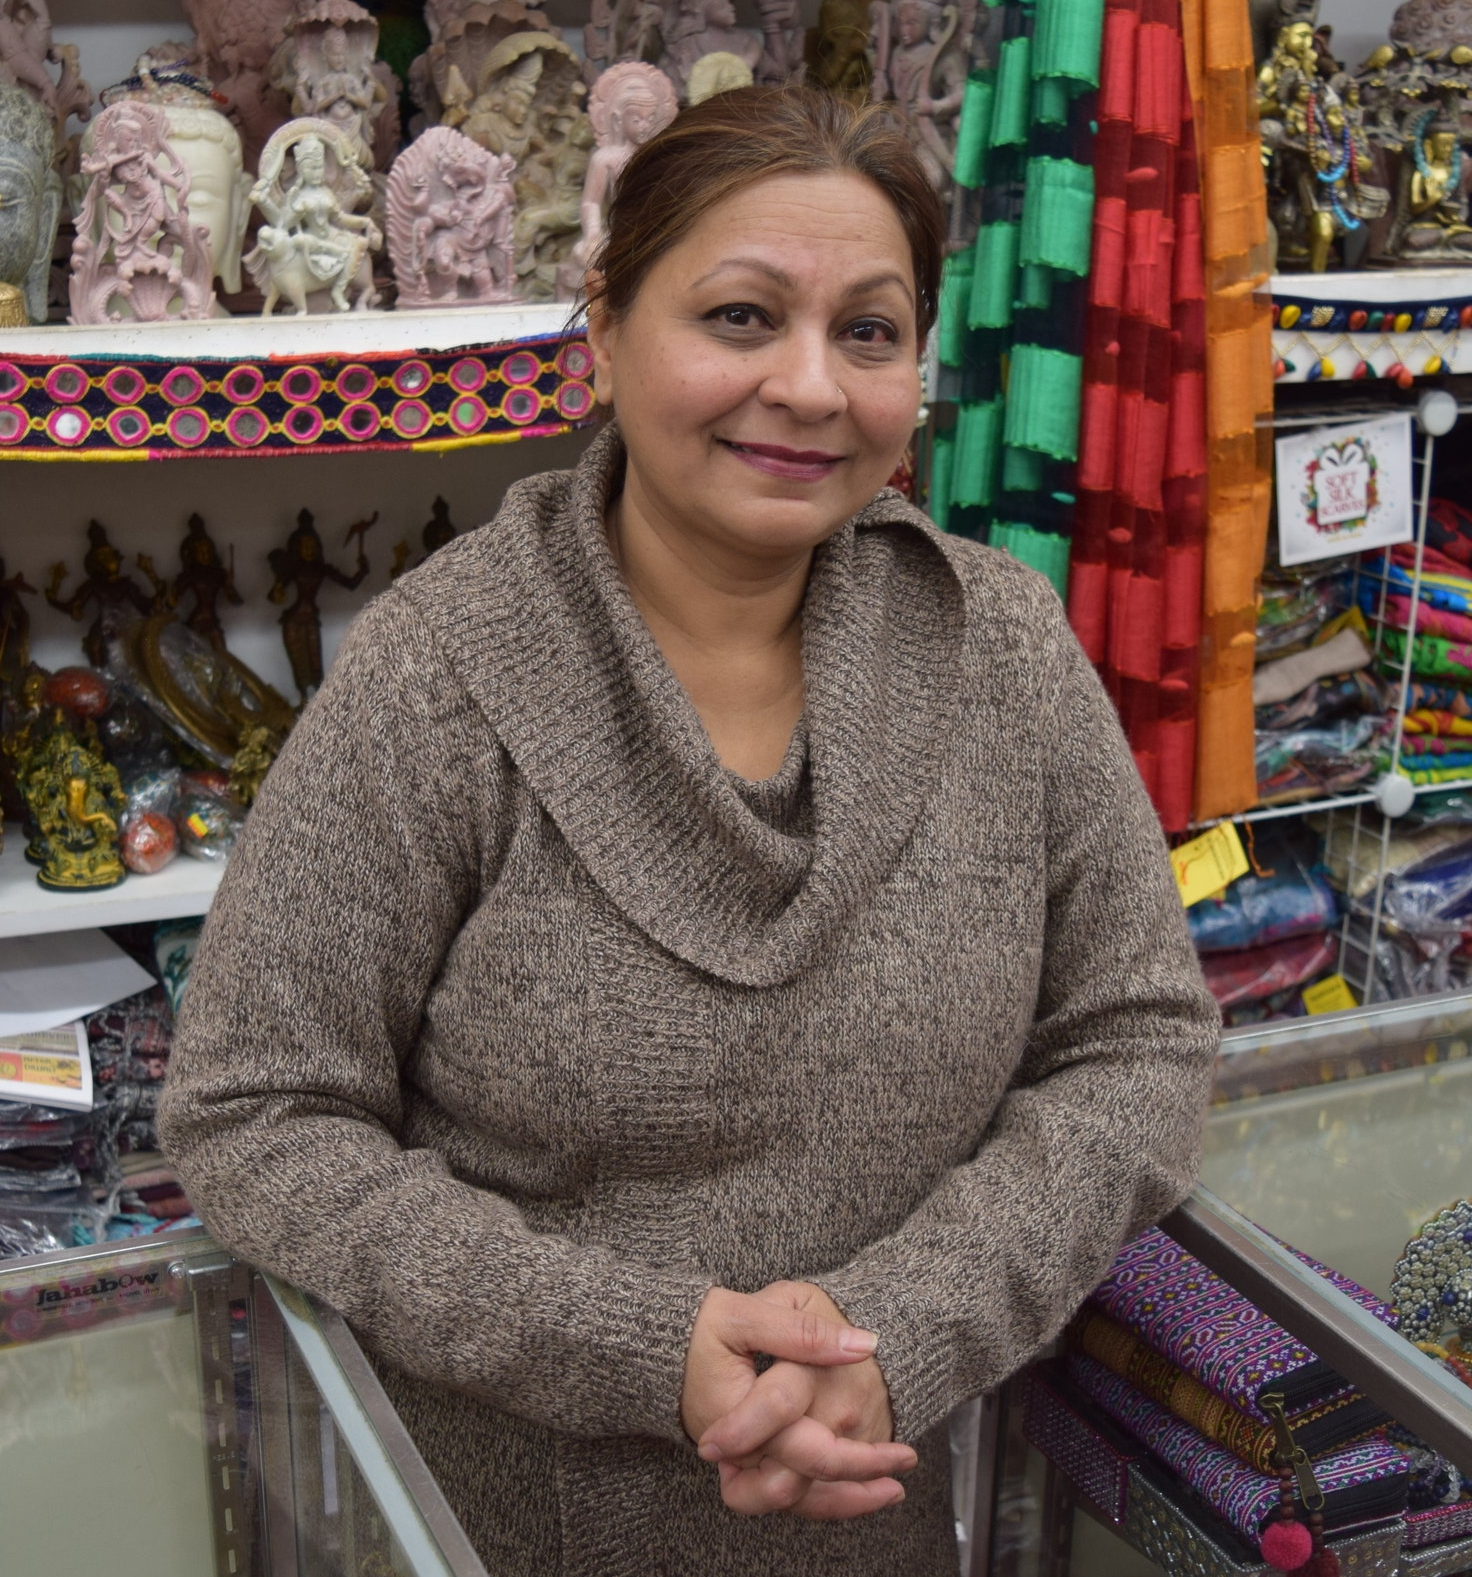 """Huma Mahtani   Co-owner, Reshams   """"We've been in business almost 30 years. We have hand-crafted goods from Indian, mostly handirafts, pillows, wall hangings, and tapestries, yoga related and meditation related, holistic healing kind of things…I grew up here. I love it. I was 12 years old when I came to America. I grew up on Devon Avenue actually. You have all different nationalities - that's the best thing about it. It's a fun neighborhood to be in. Everyone gets along. We love each other."""""""